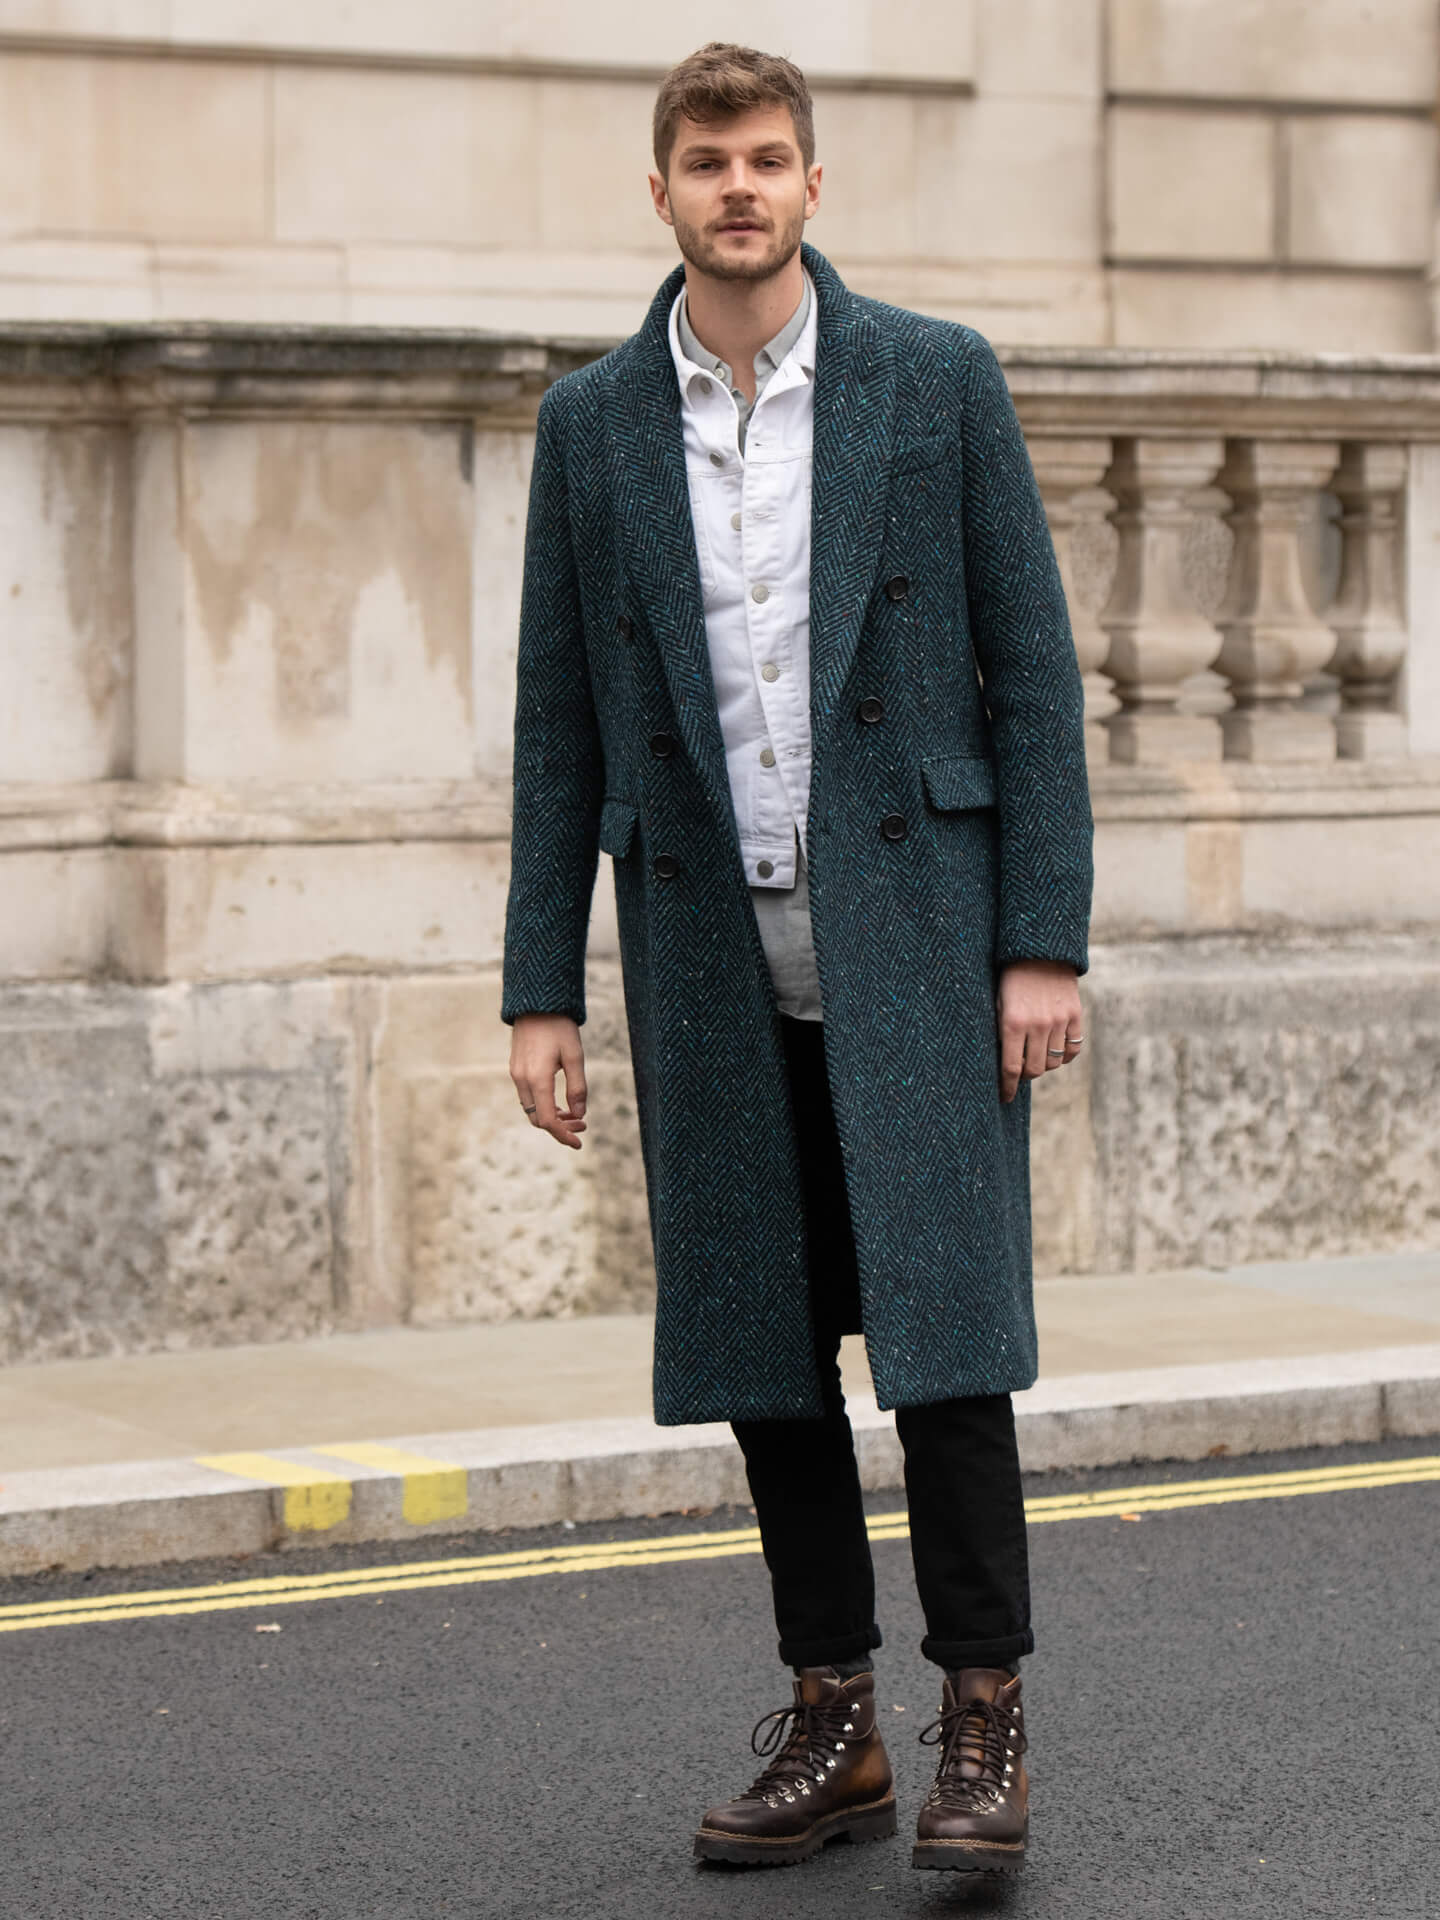 Männer Outfit Jim Chapman Shoe Fashion